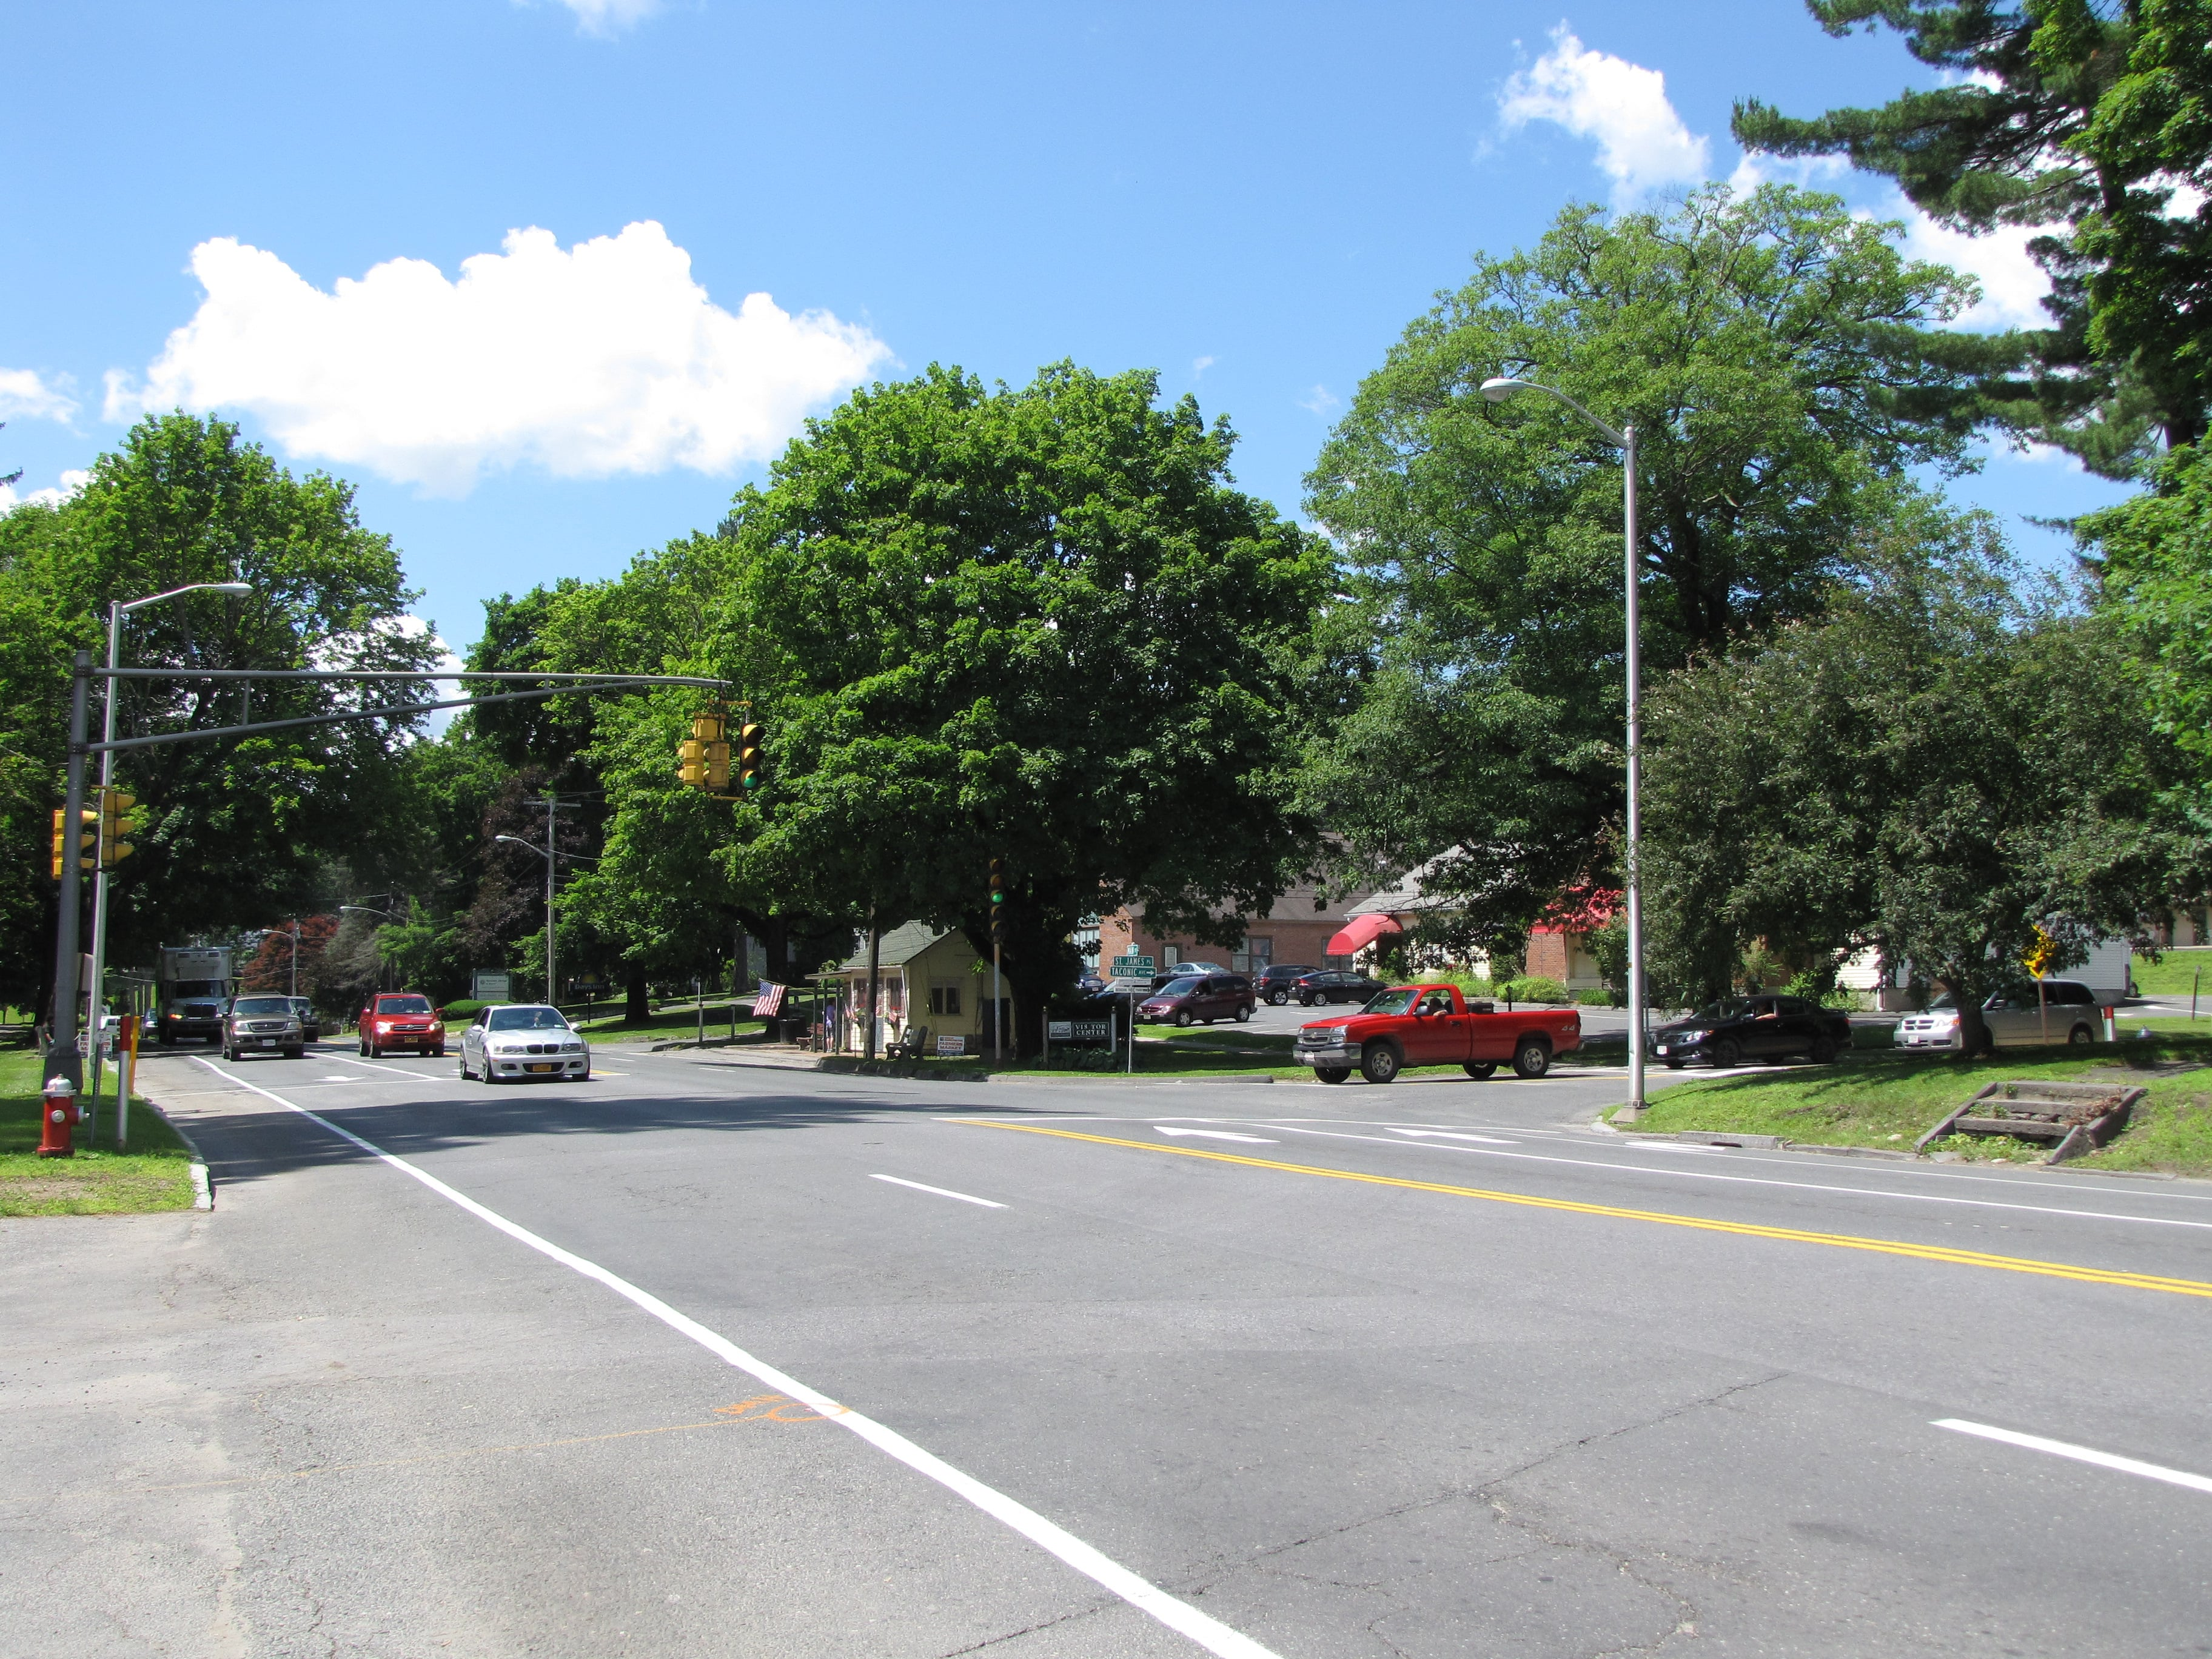 On South Main Street, the project begins at the intersection of St. James Place (Taconic Ave.).